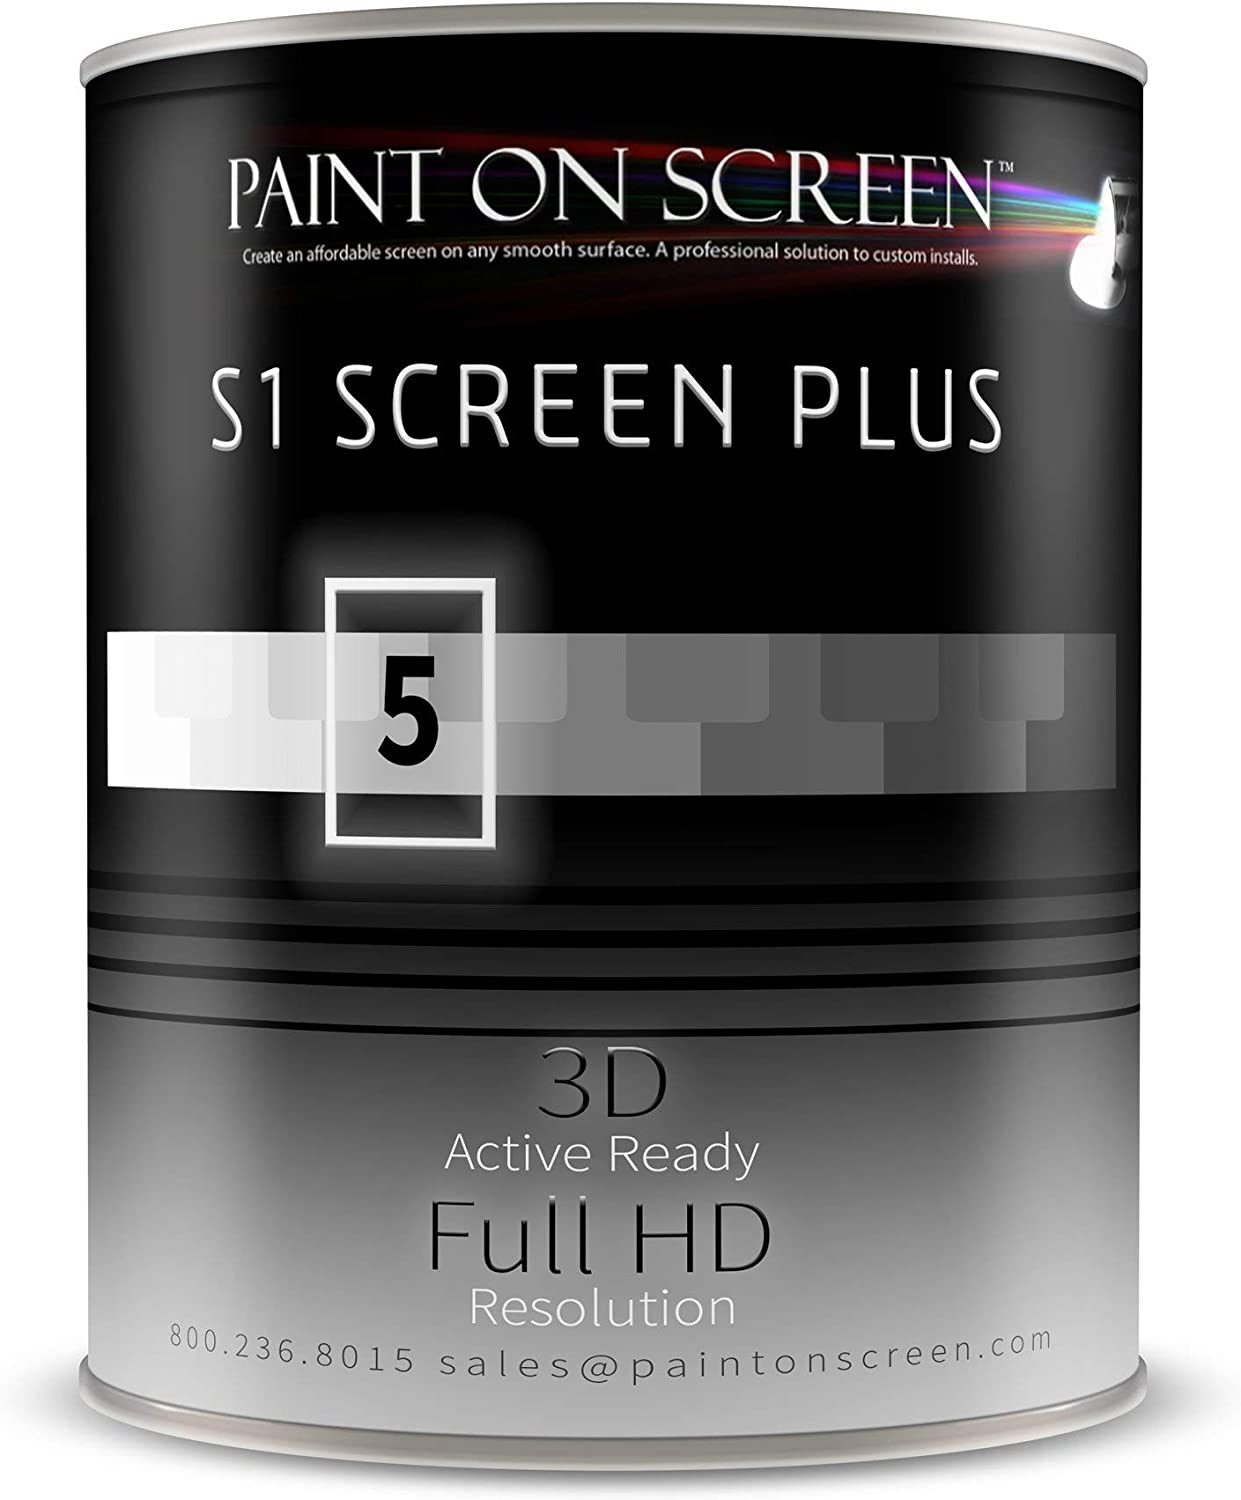 Paint On Screen Projector Screen Paint G005 (S1 Screen Plus Silver - Gallon)